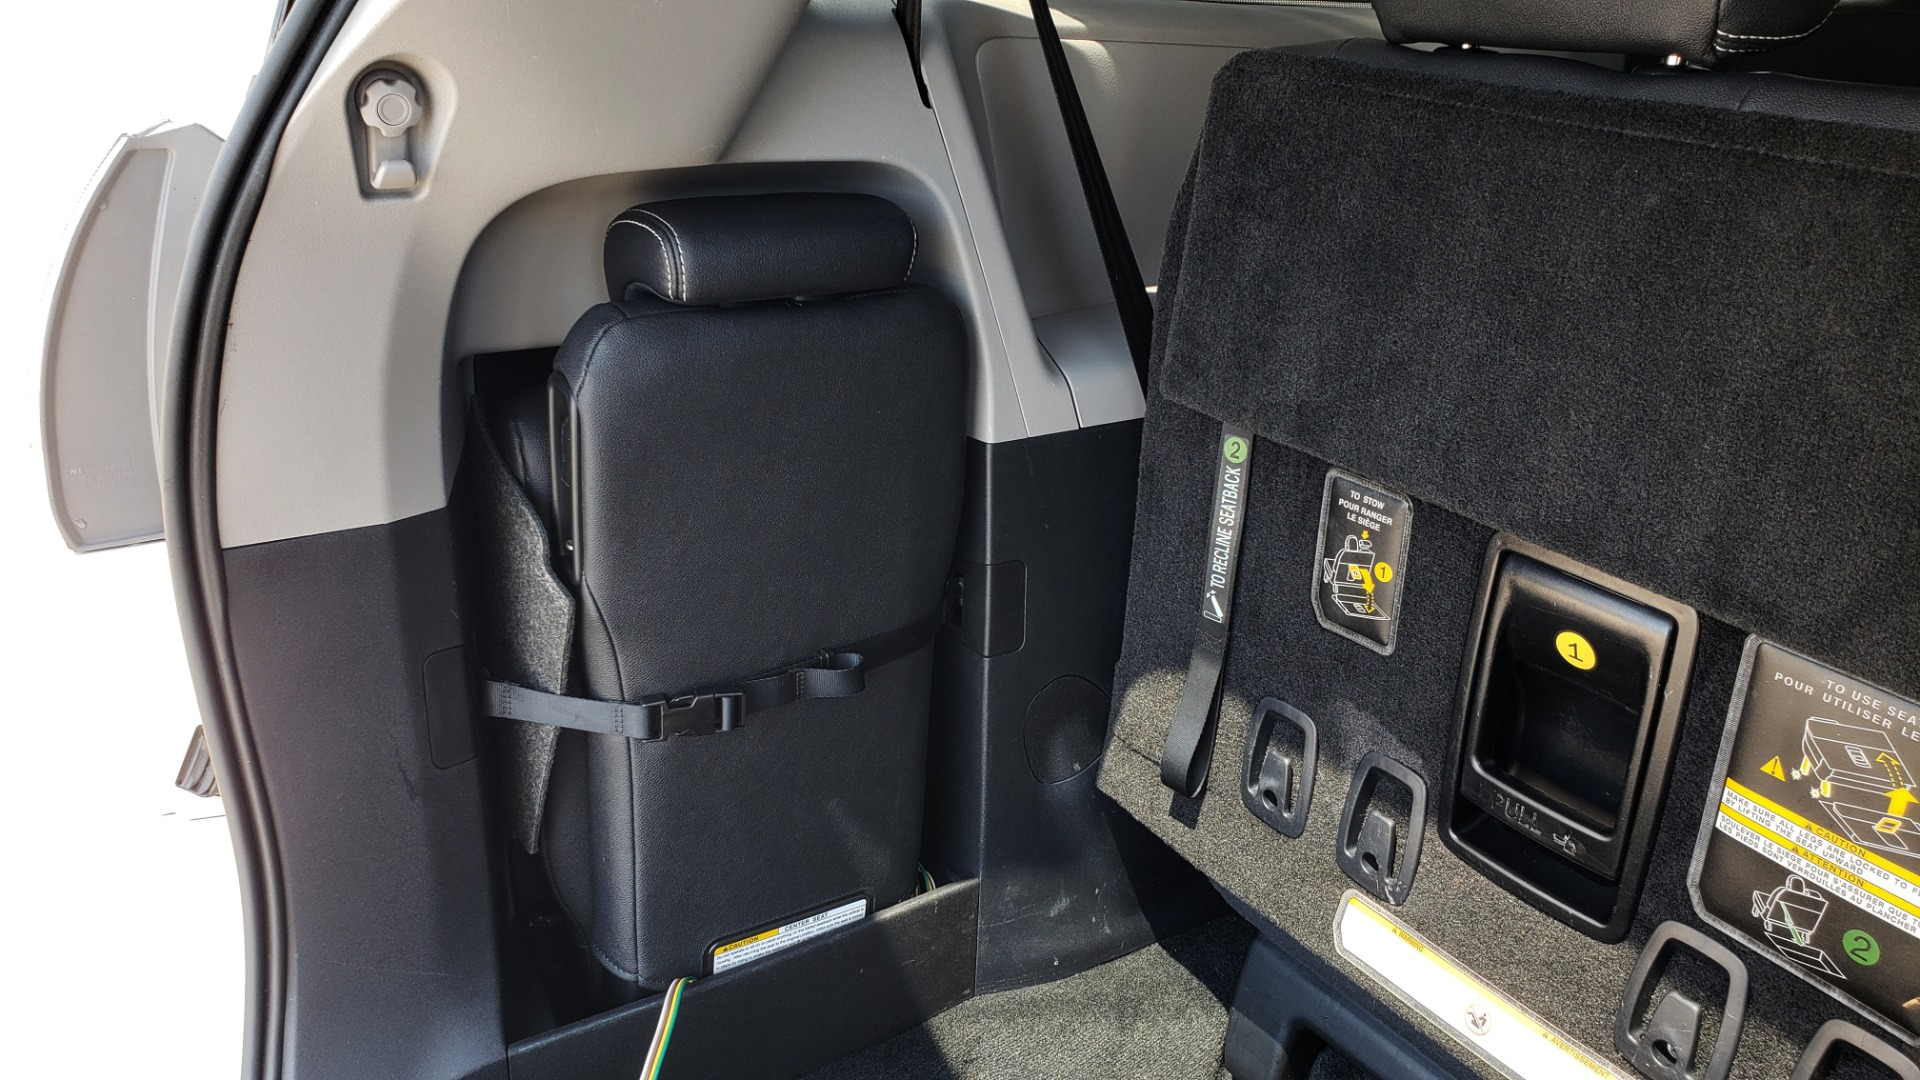 Used 2015 Toyota SIENNA SE 3.5L / FWD / 3-ROWS / 8-PASS / SUNROOF / DVD / REARVIEW for sale $21,995 at Formula Imports in Charlotte NC 28227 17